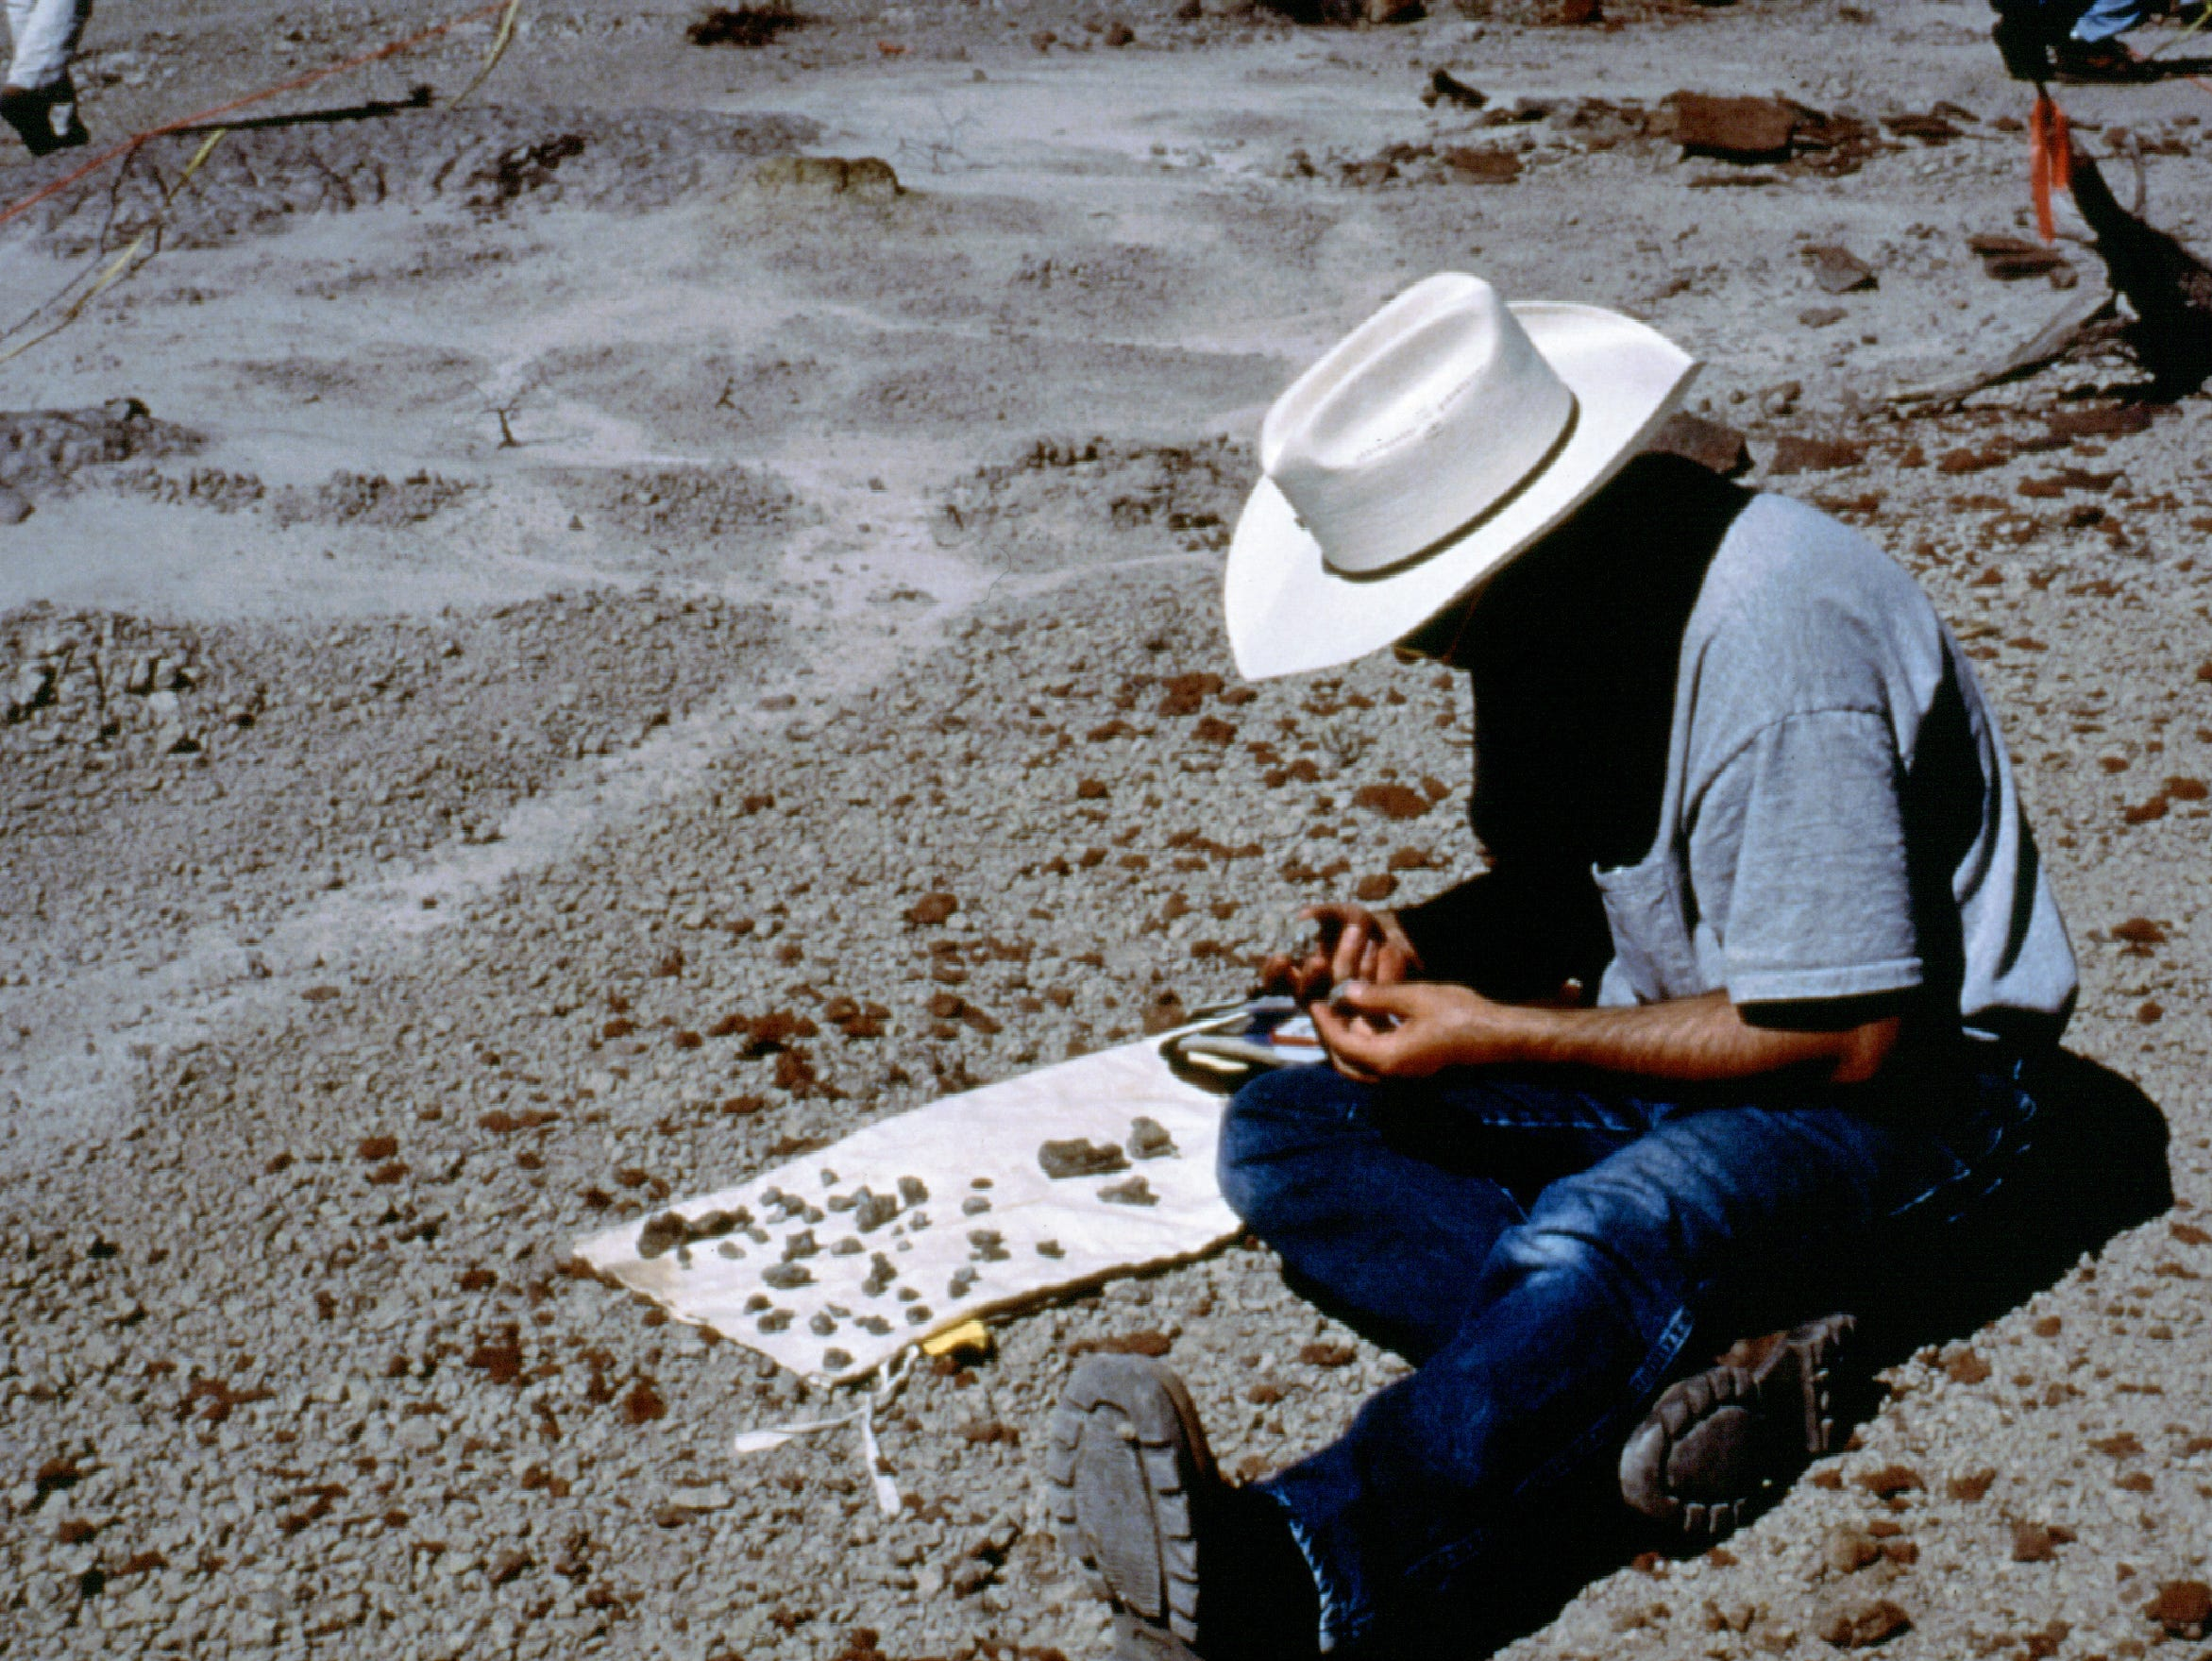 An expert studies the bones that would later be identified as the Suskityrannus.